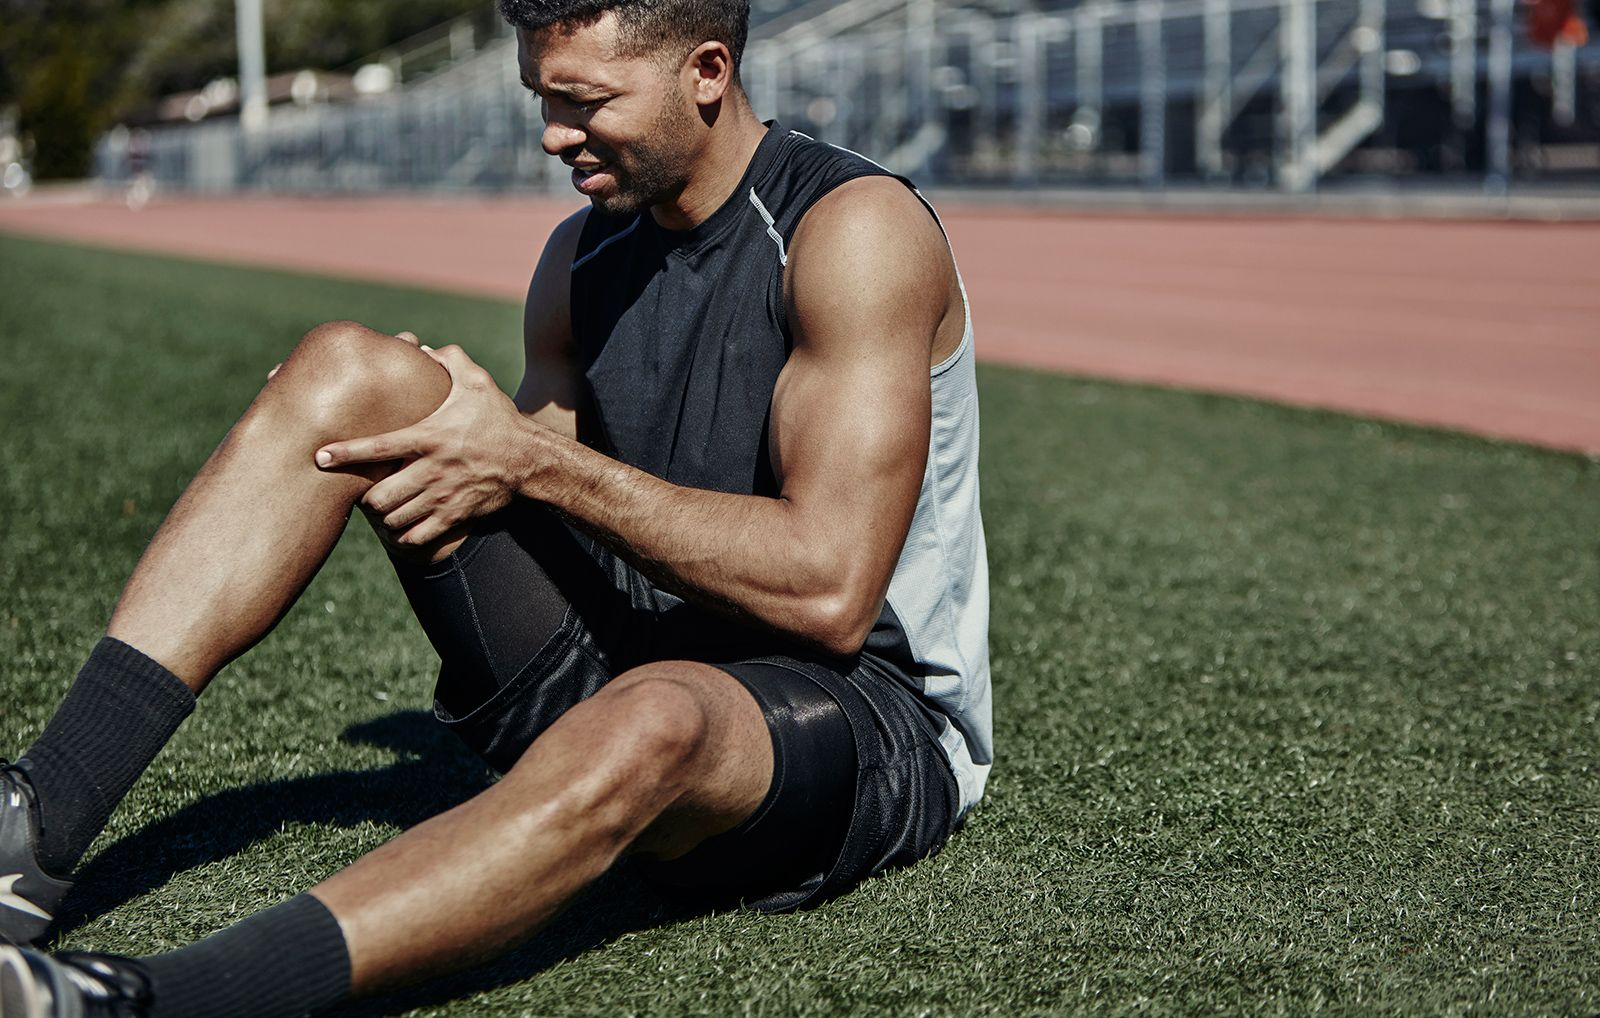 10 Ways to Get Rid of Sore Muscles - How to Speed Up Recovery